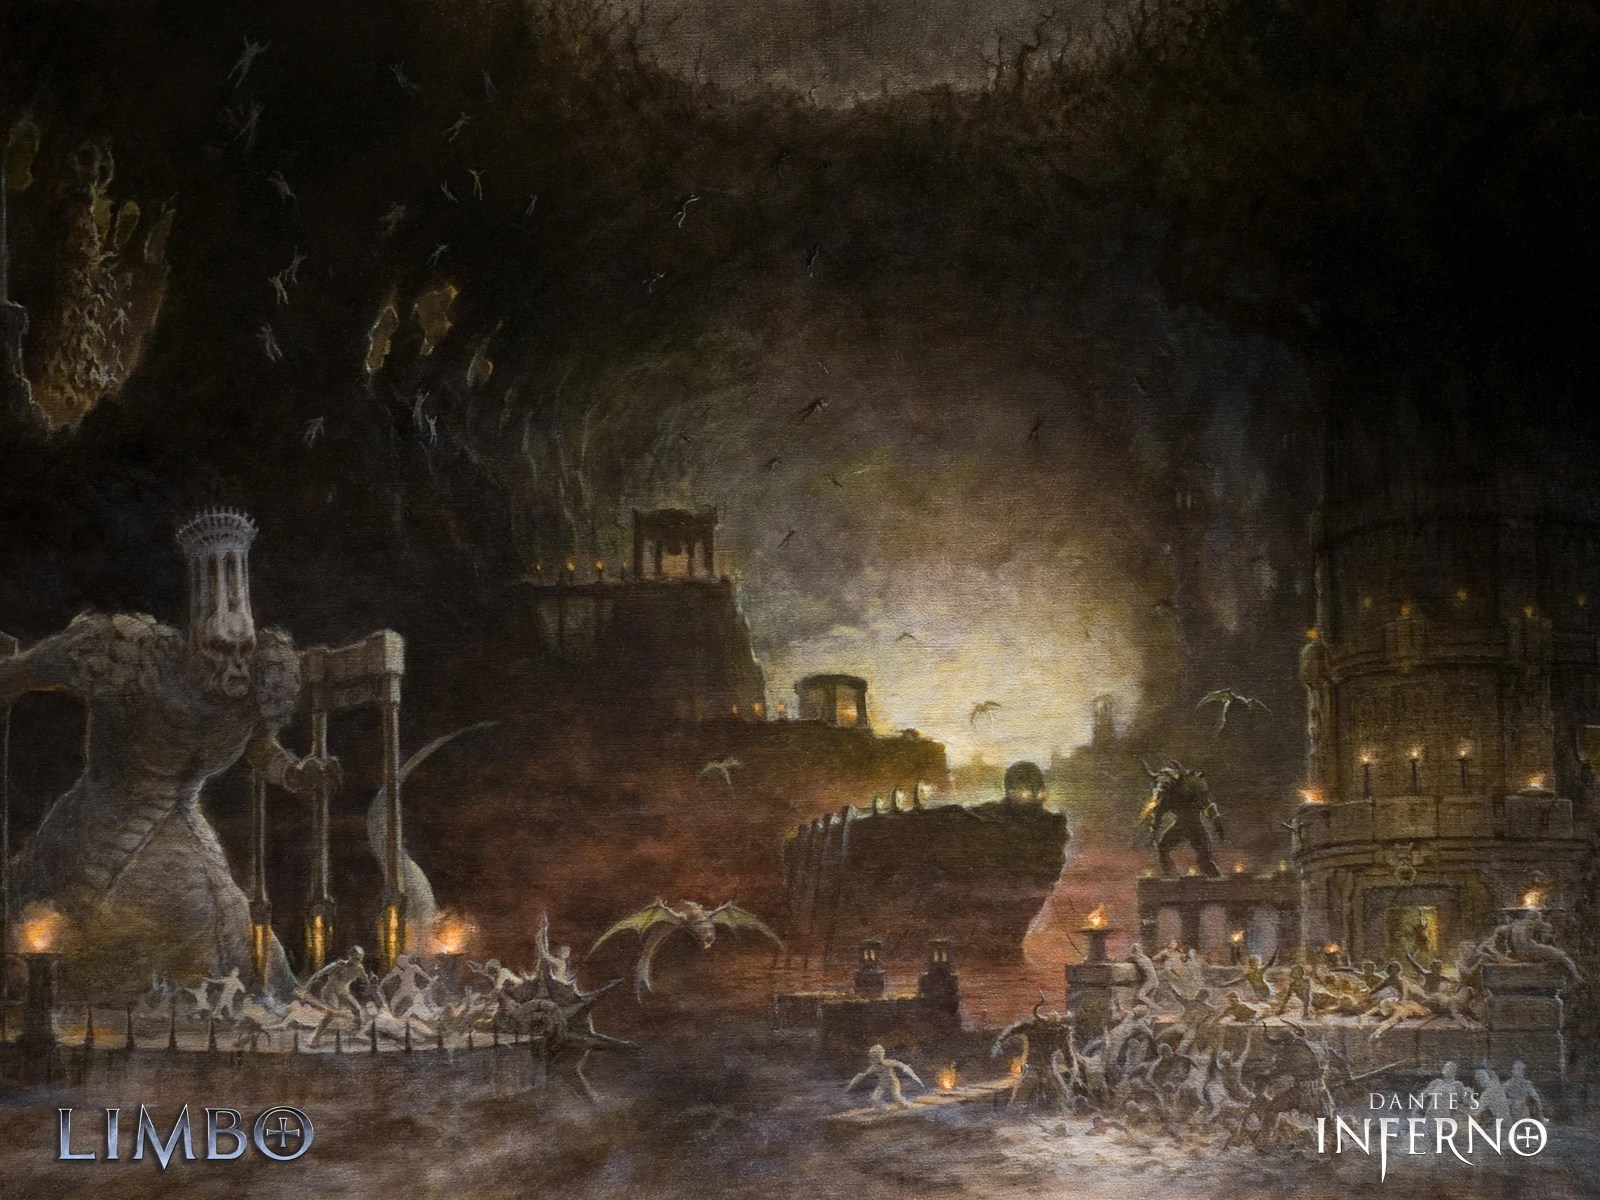 Dante On This Page Quotes Wallpaper Limbo Dante S Inferno Wiki Fandom Powered By Wikia